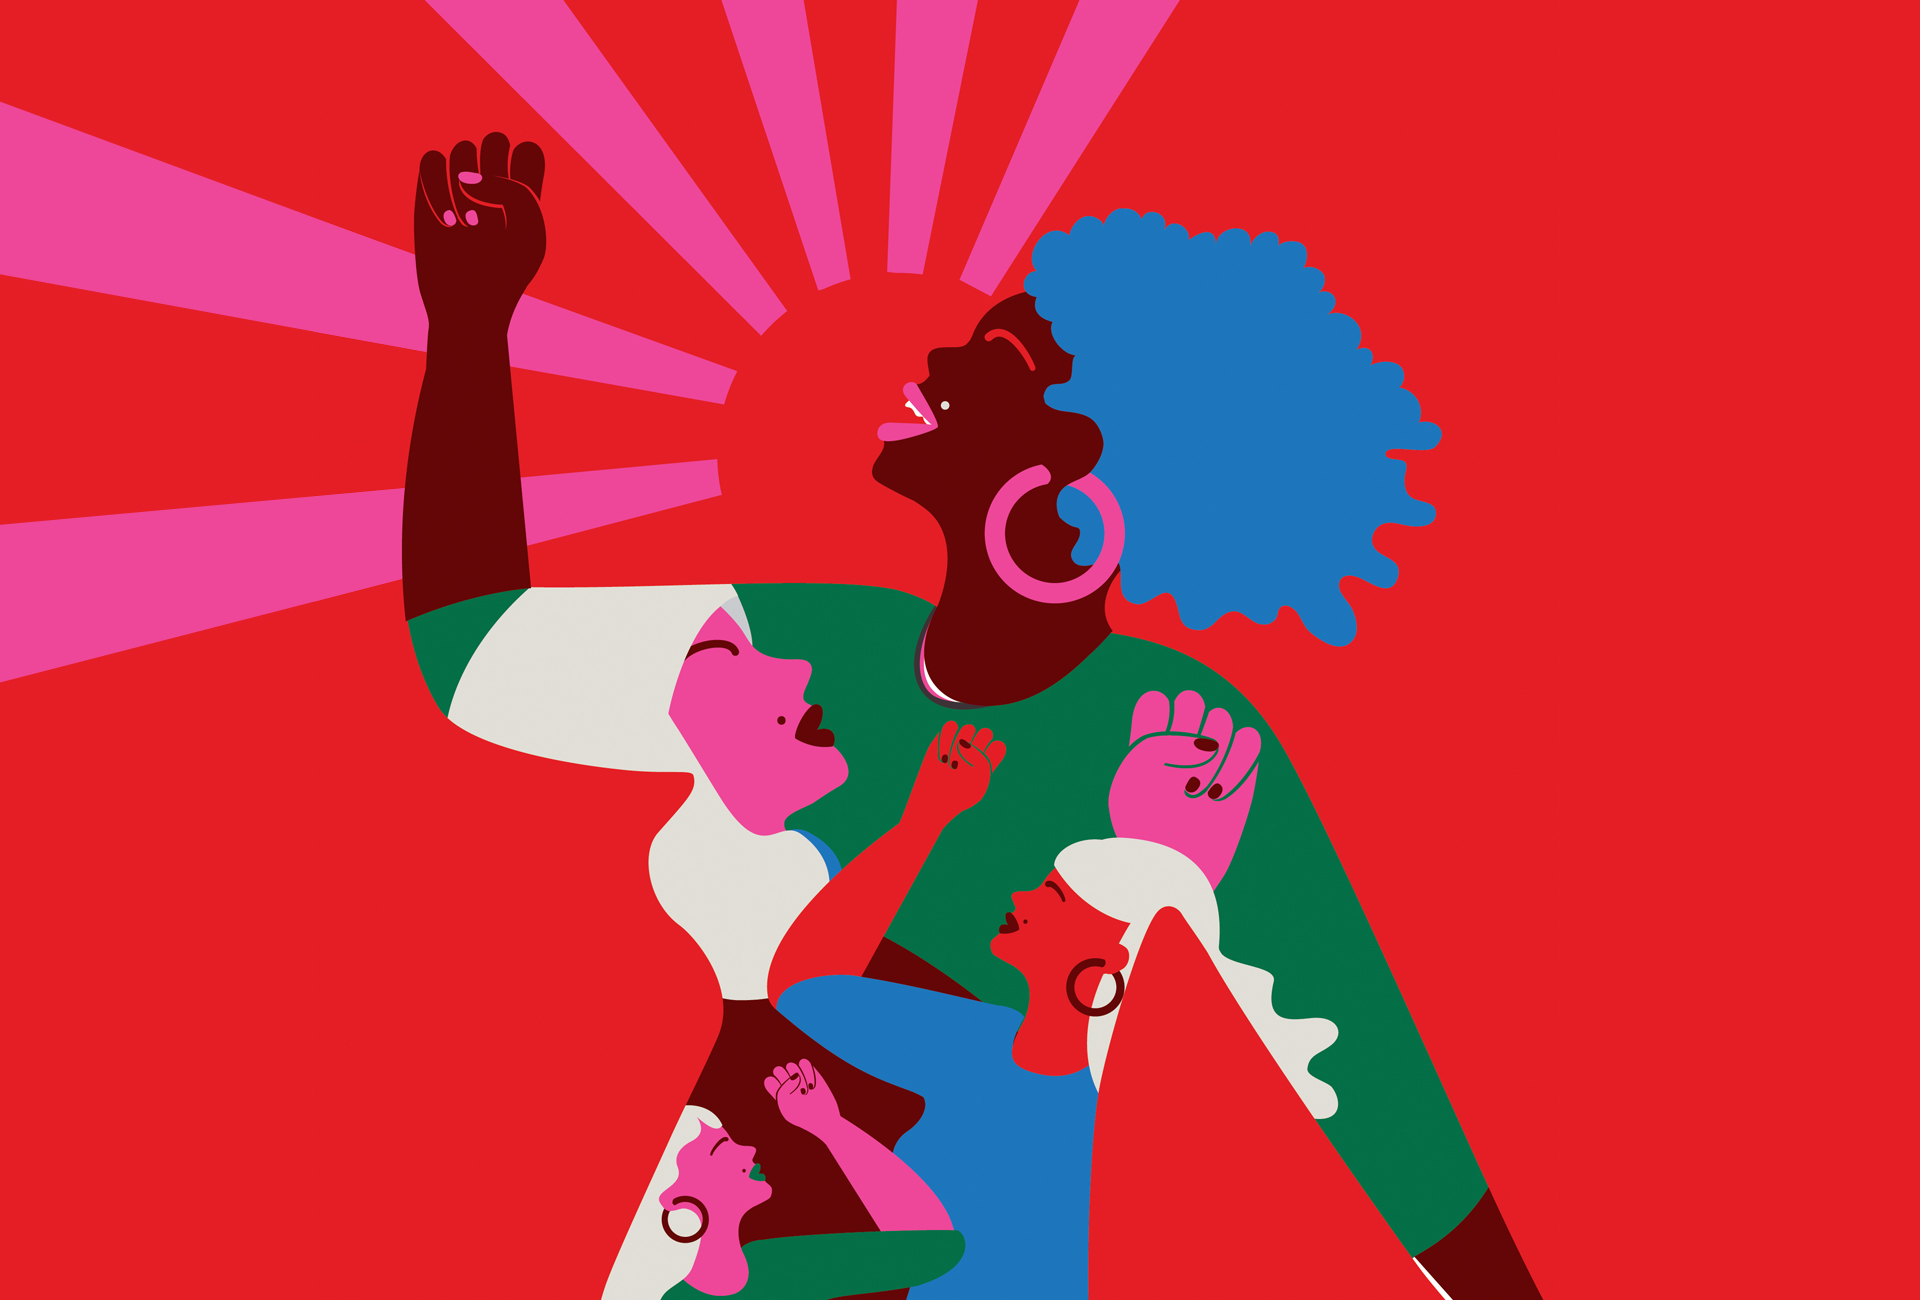 Illustration of a women yelling with a raised fist against a bright red background. In her shirt, there is a pattern of various women with their fists raised.